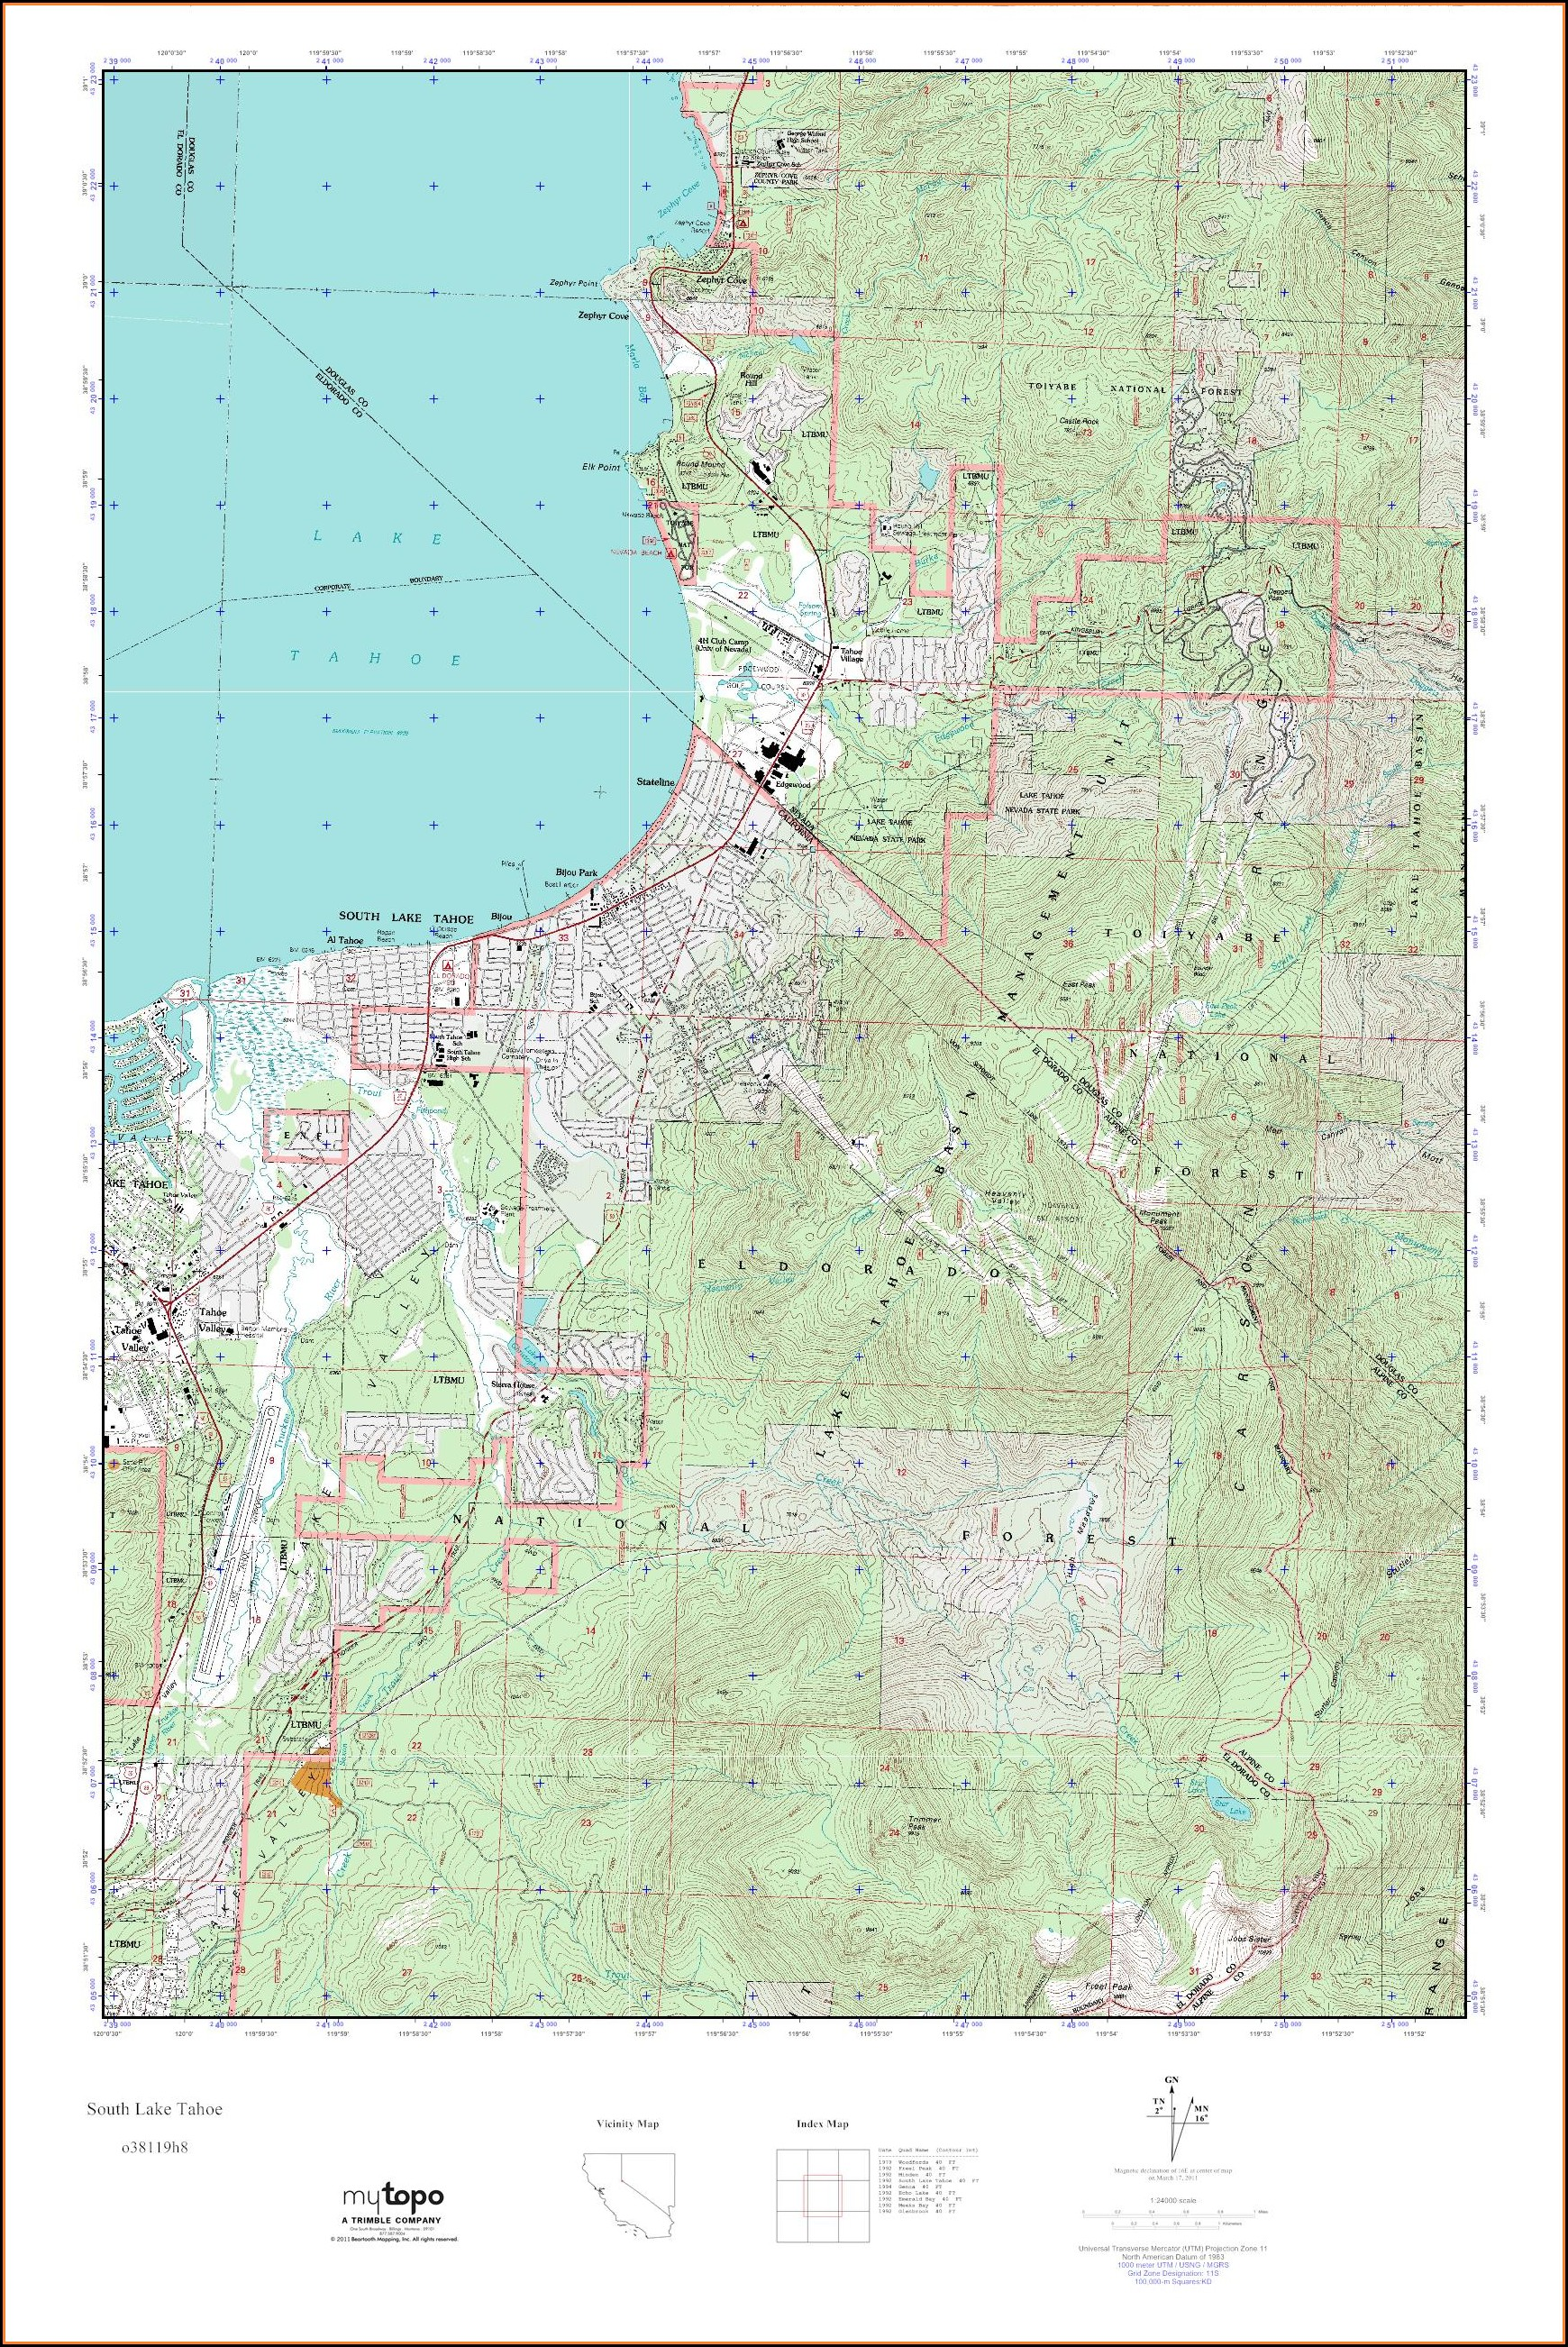 South Lake Tahoe Topo Map